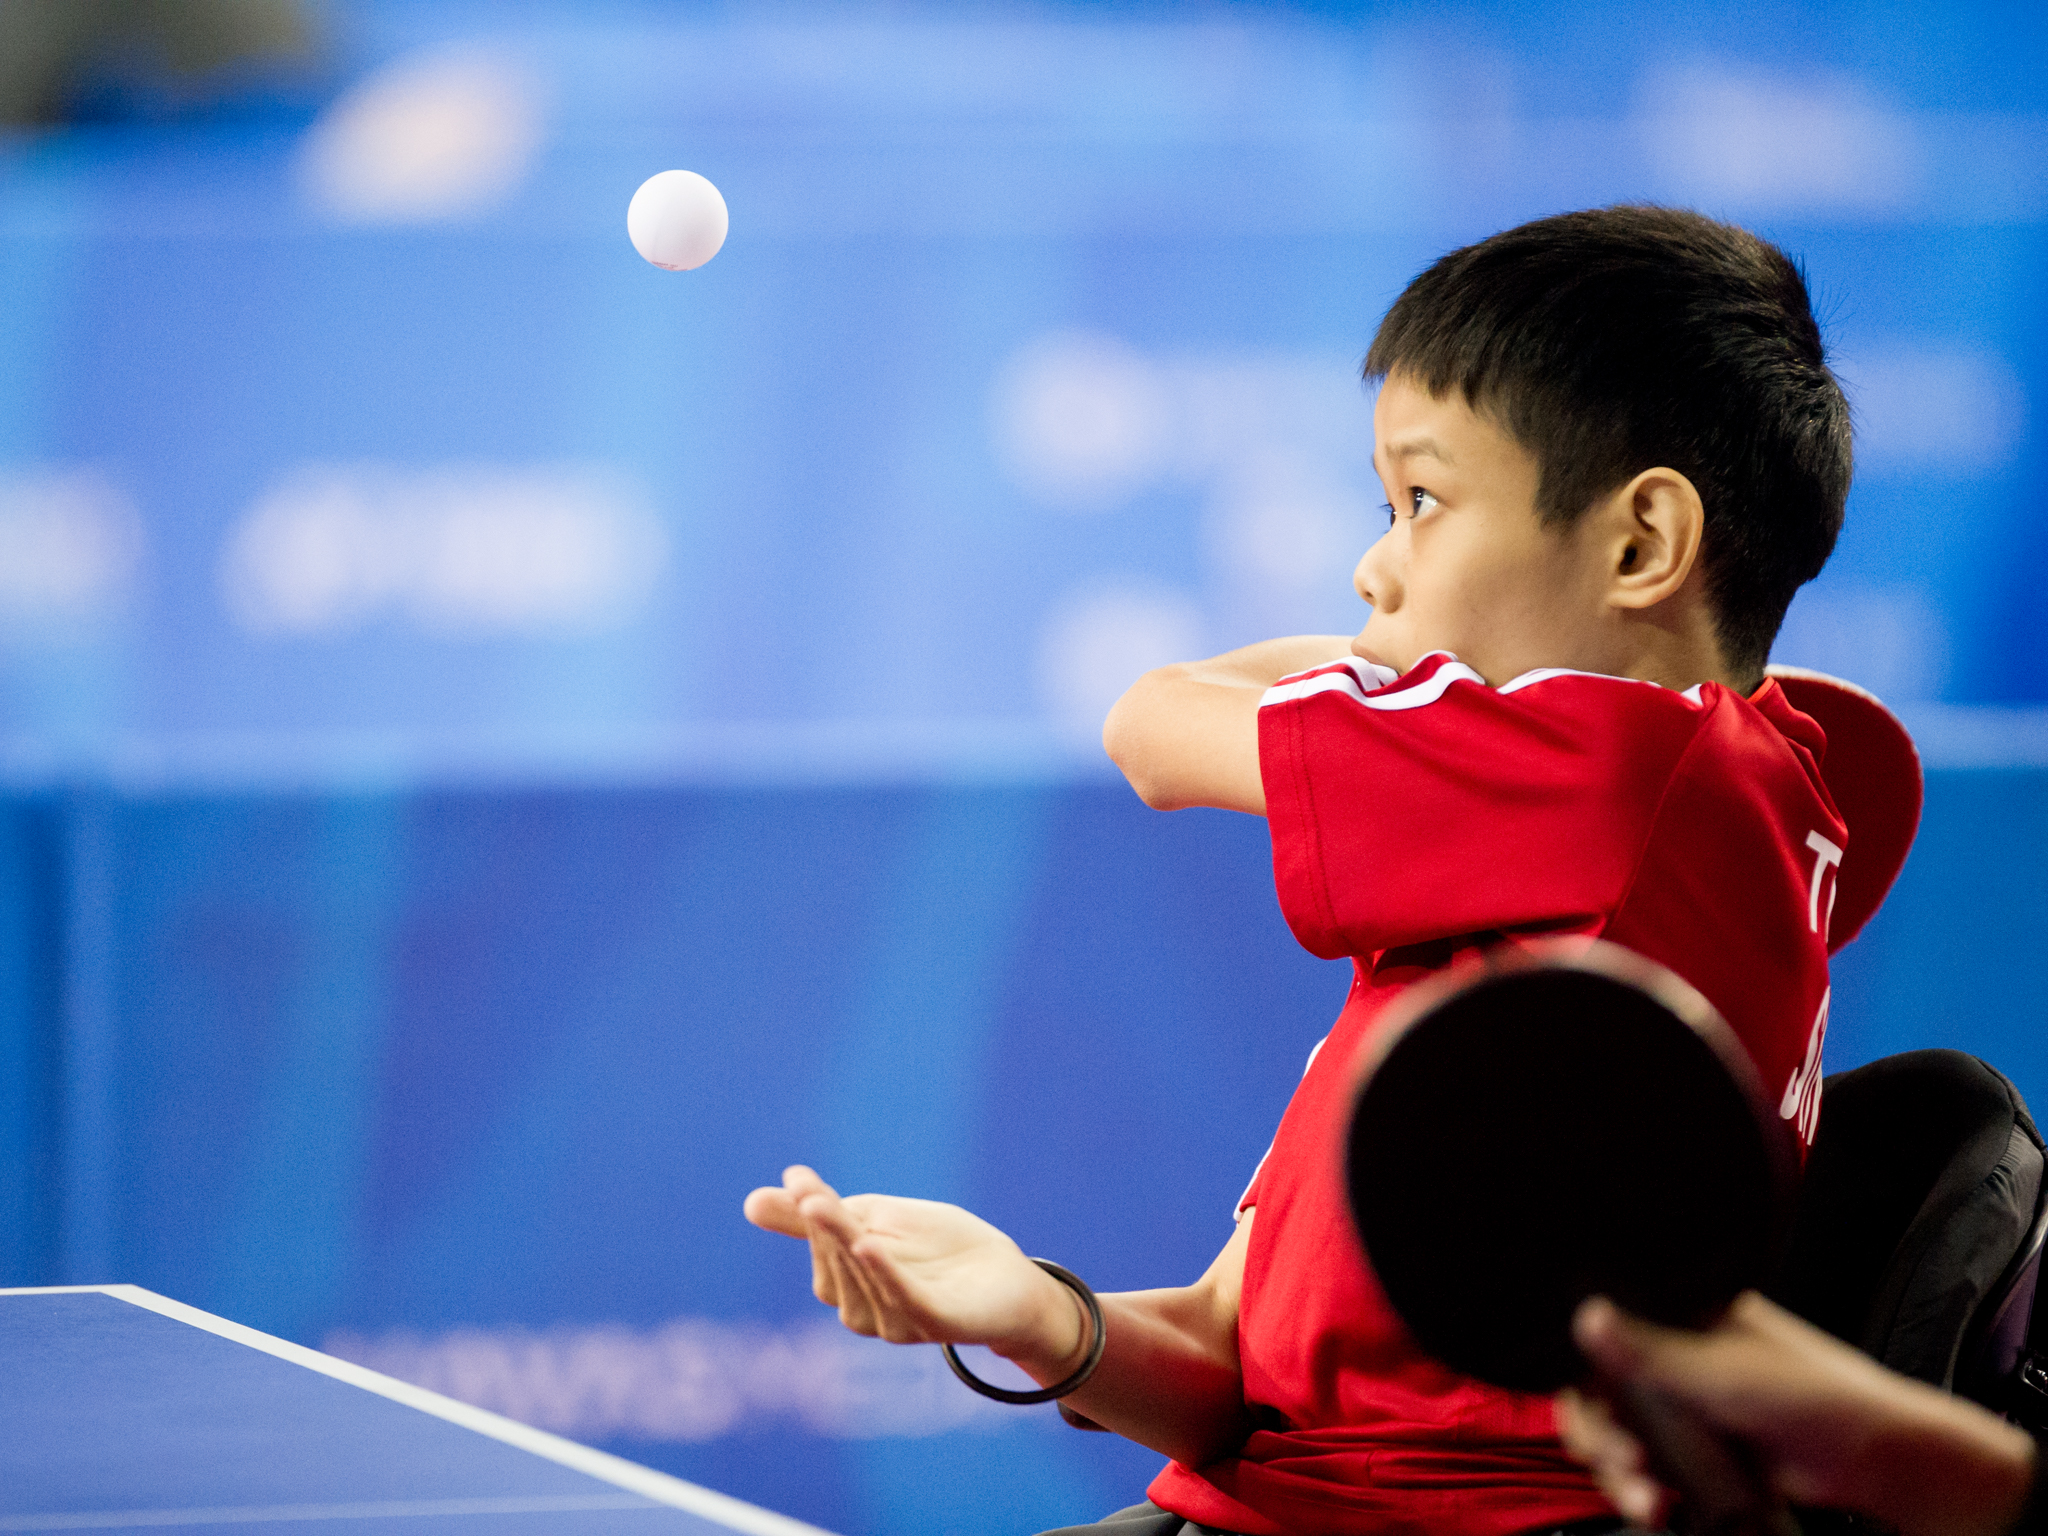 A para-table tennis player serves during the ASEAN Para Games at the OCBC Arena.